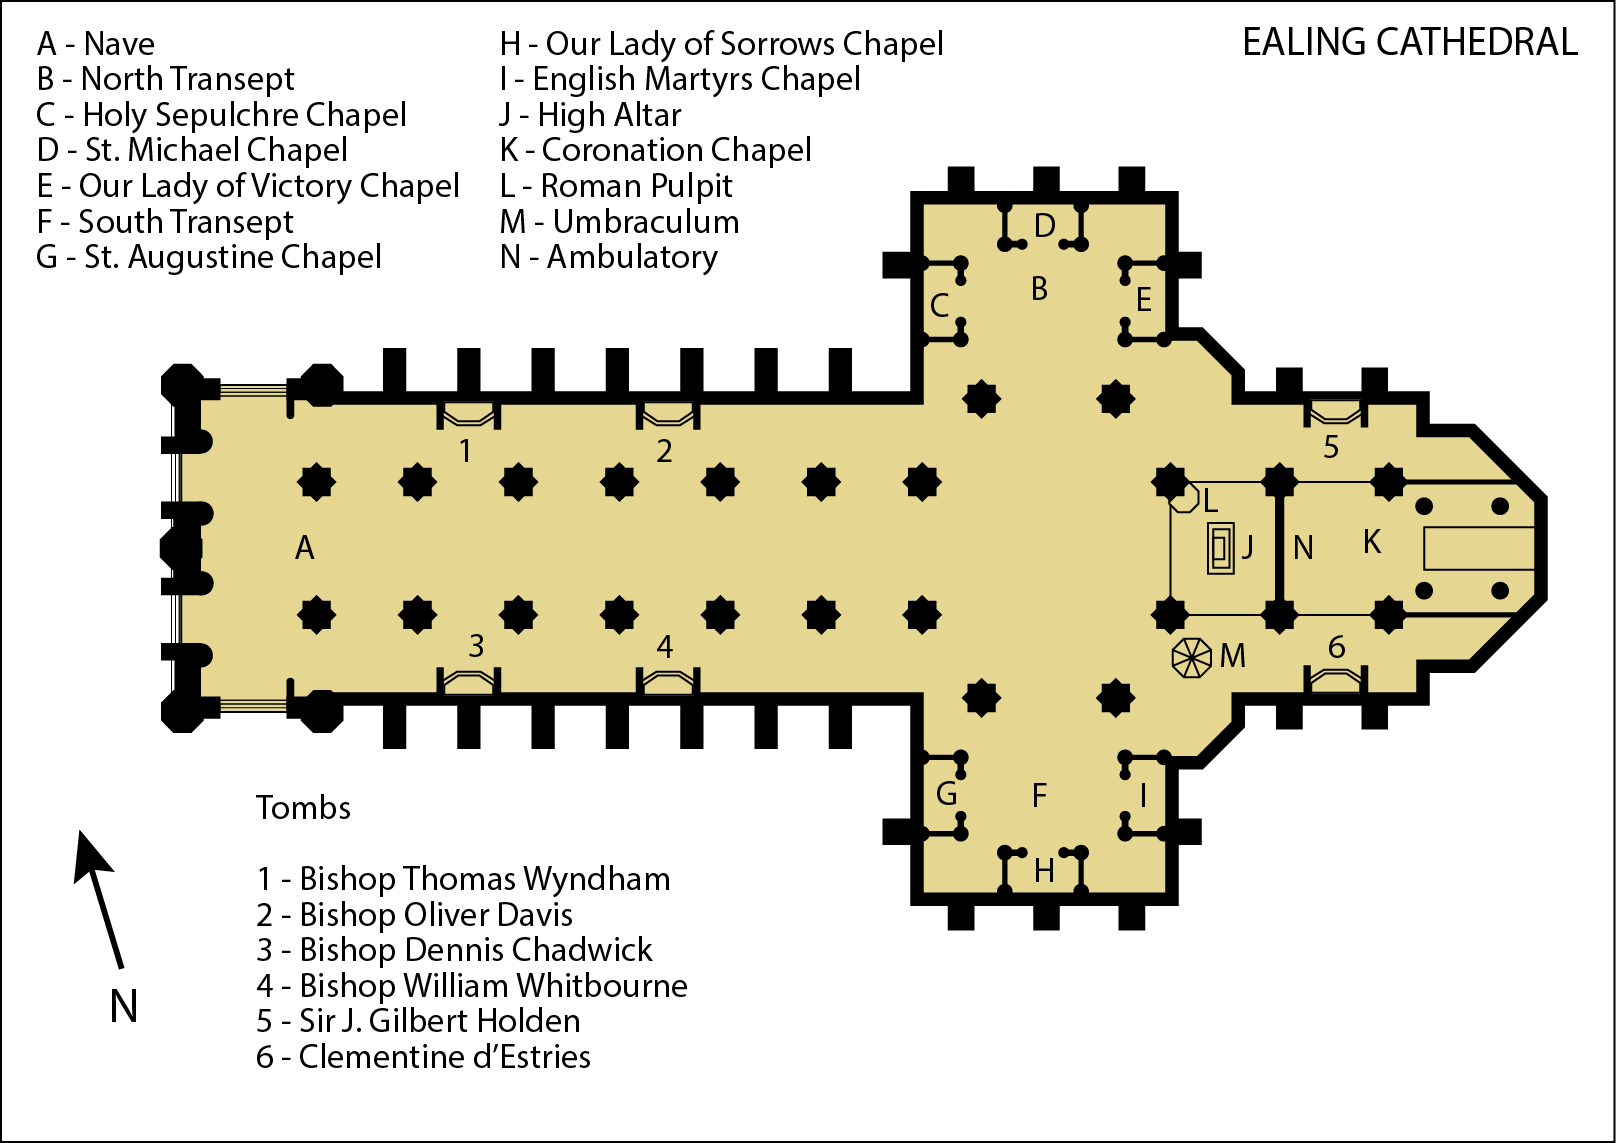 Ealing Cathedral map